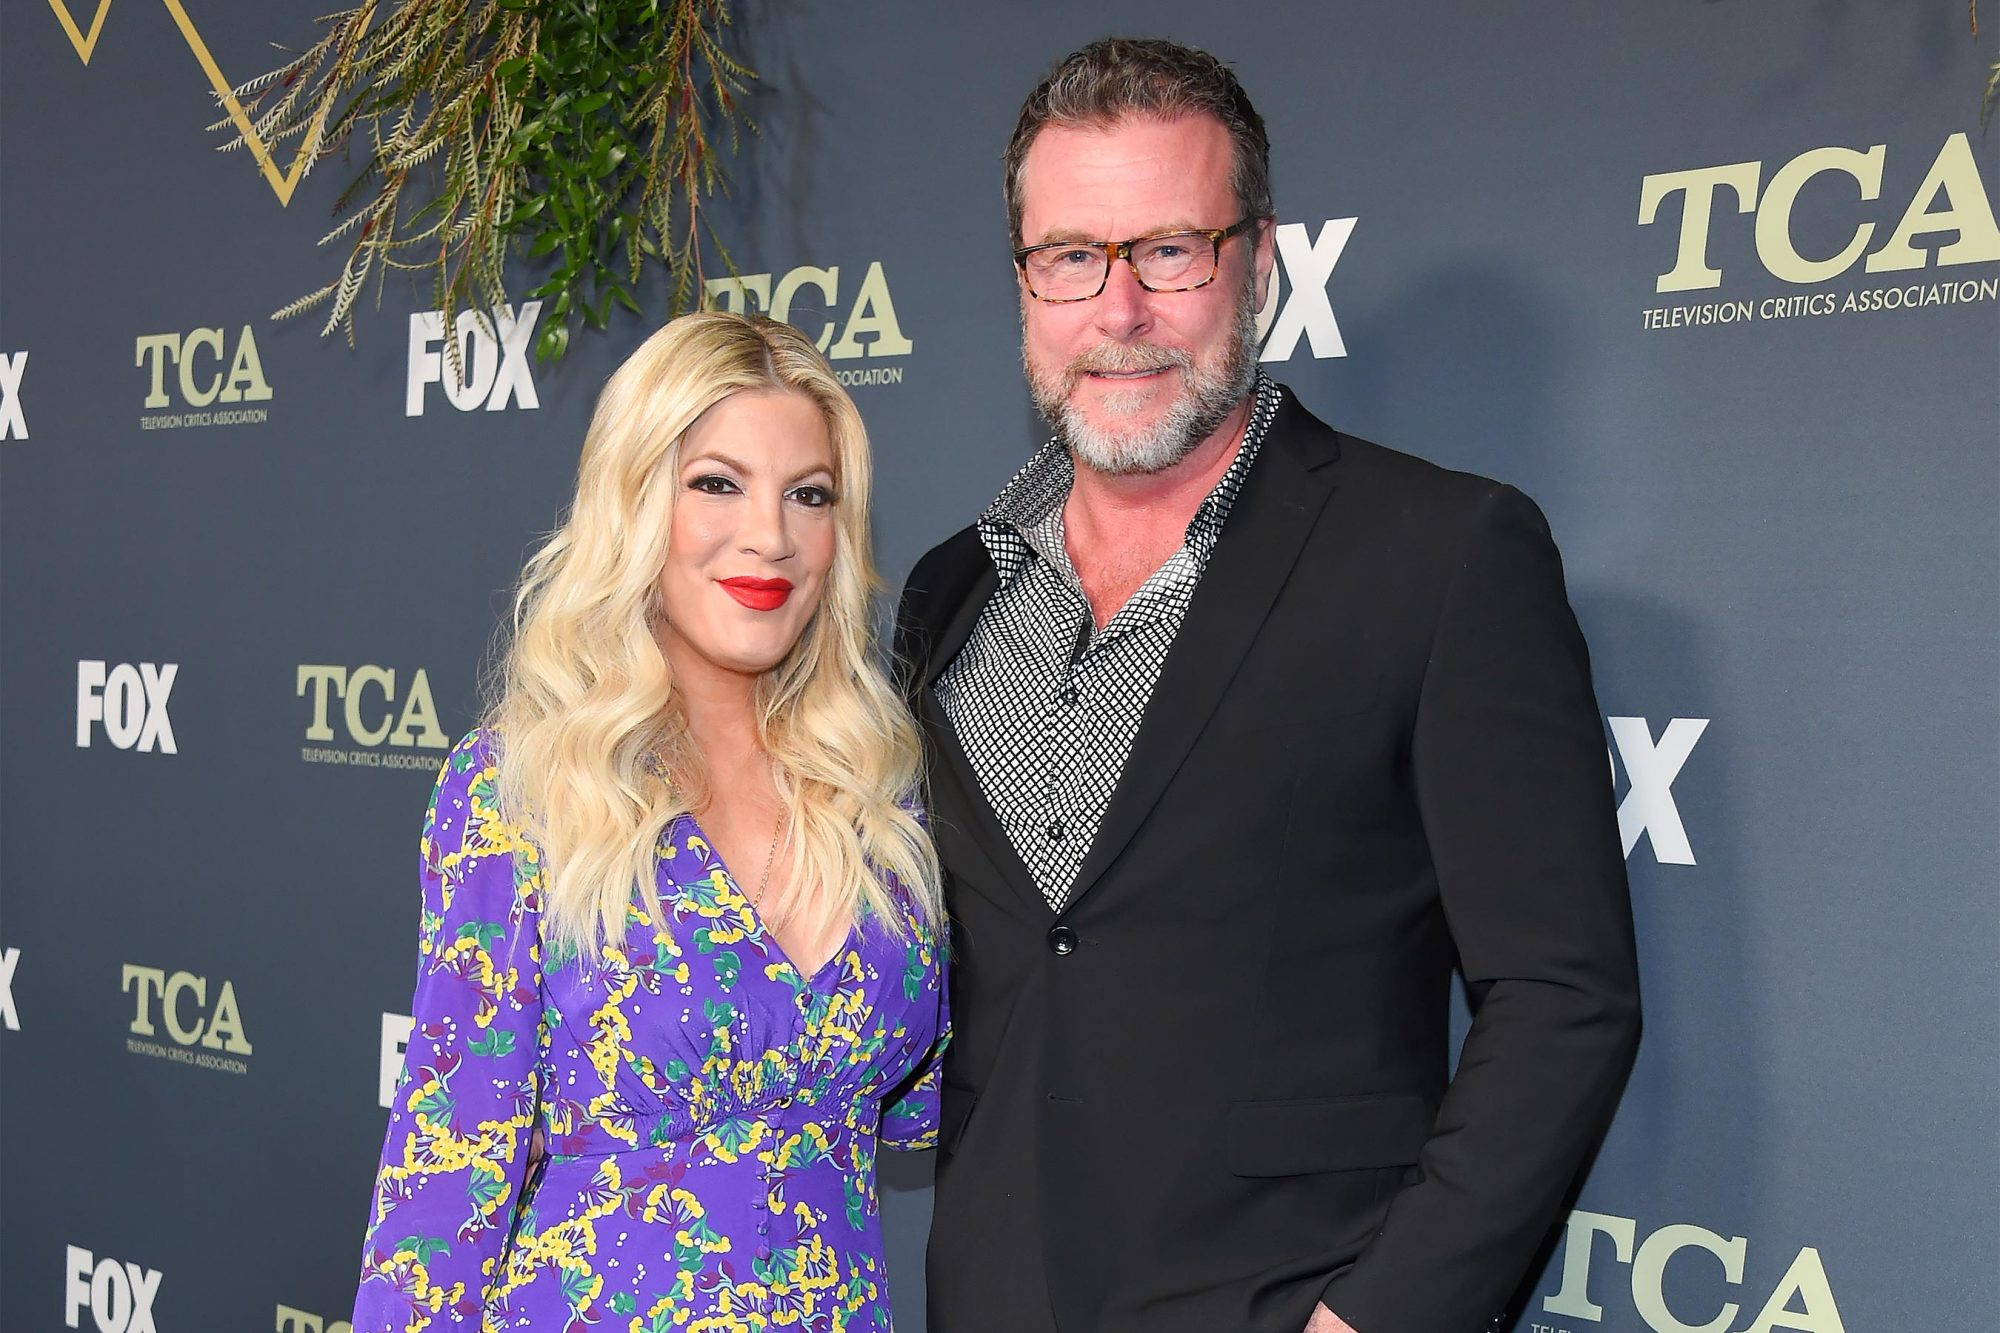 Actress Tori Spelling (L) and husband actor Dean McDermott arrive at the FOX Winter TCA All-Star Party 2019 at The Fig House in Los Angeles, on February 6, 2019. (Photo by LISA O'CONNOR / AFP) (Photo credit should read LISA O'CONNOR/AFP/Getty Images)